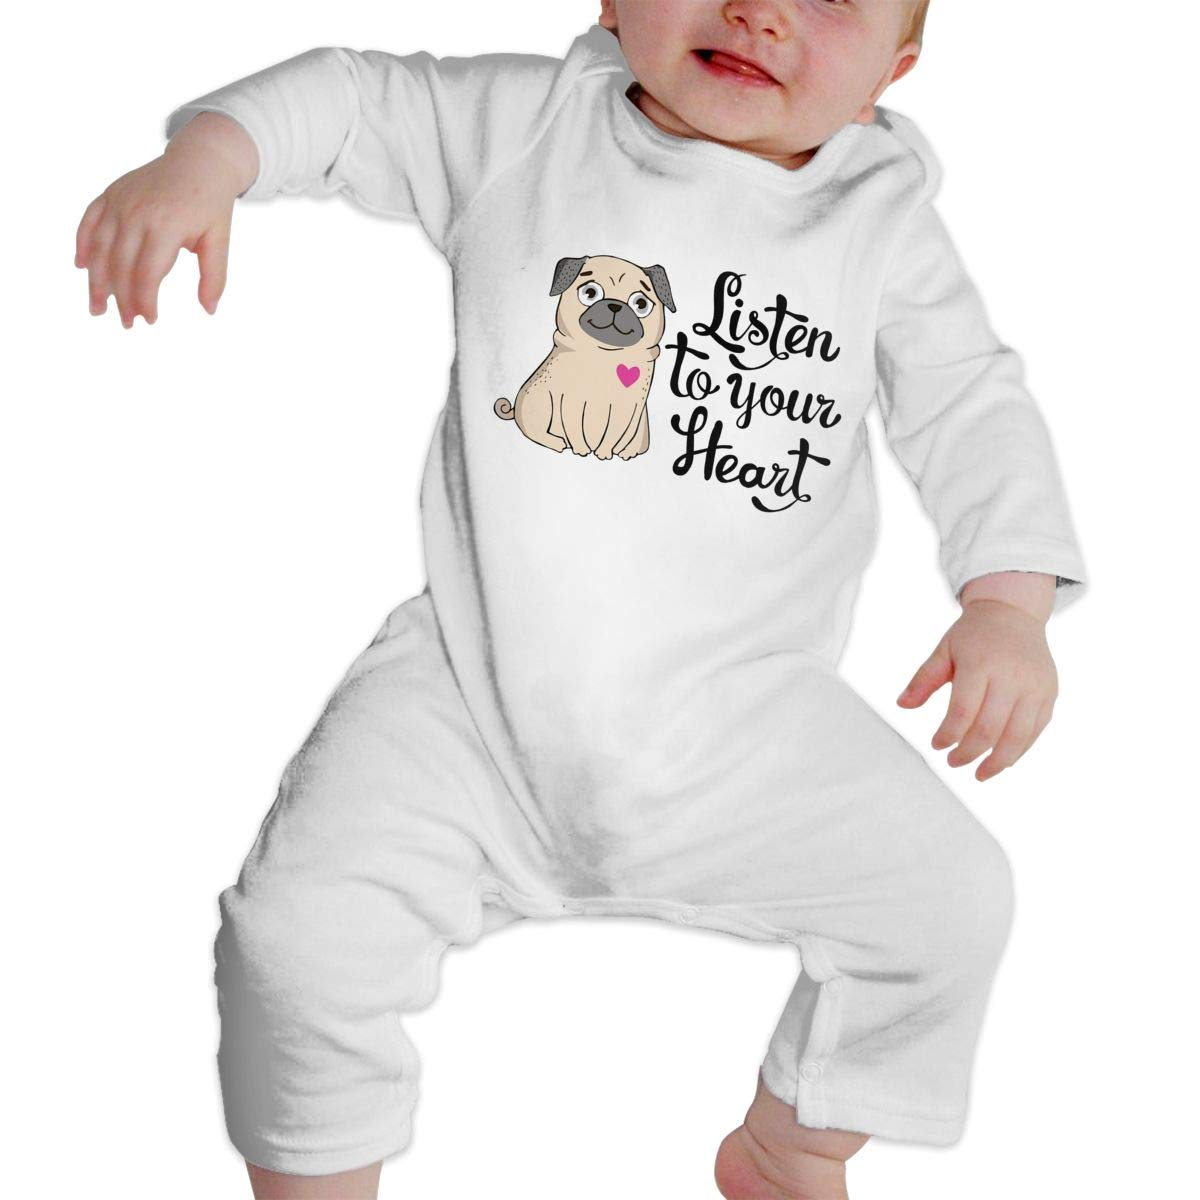 NOALKJ Babys Long Sleeve Romper,Listen-to-Your-Heart Jumpsuit Bodysuit Clothes